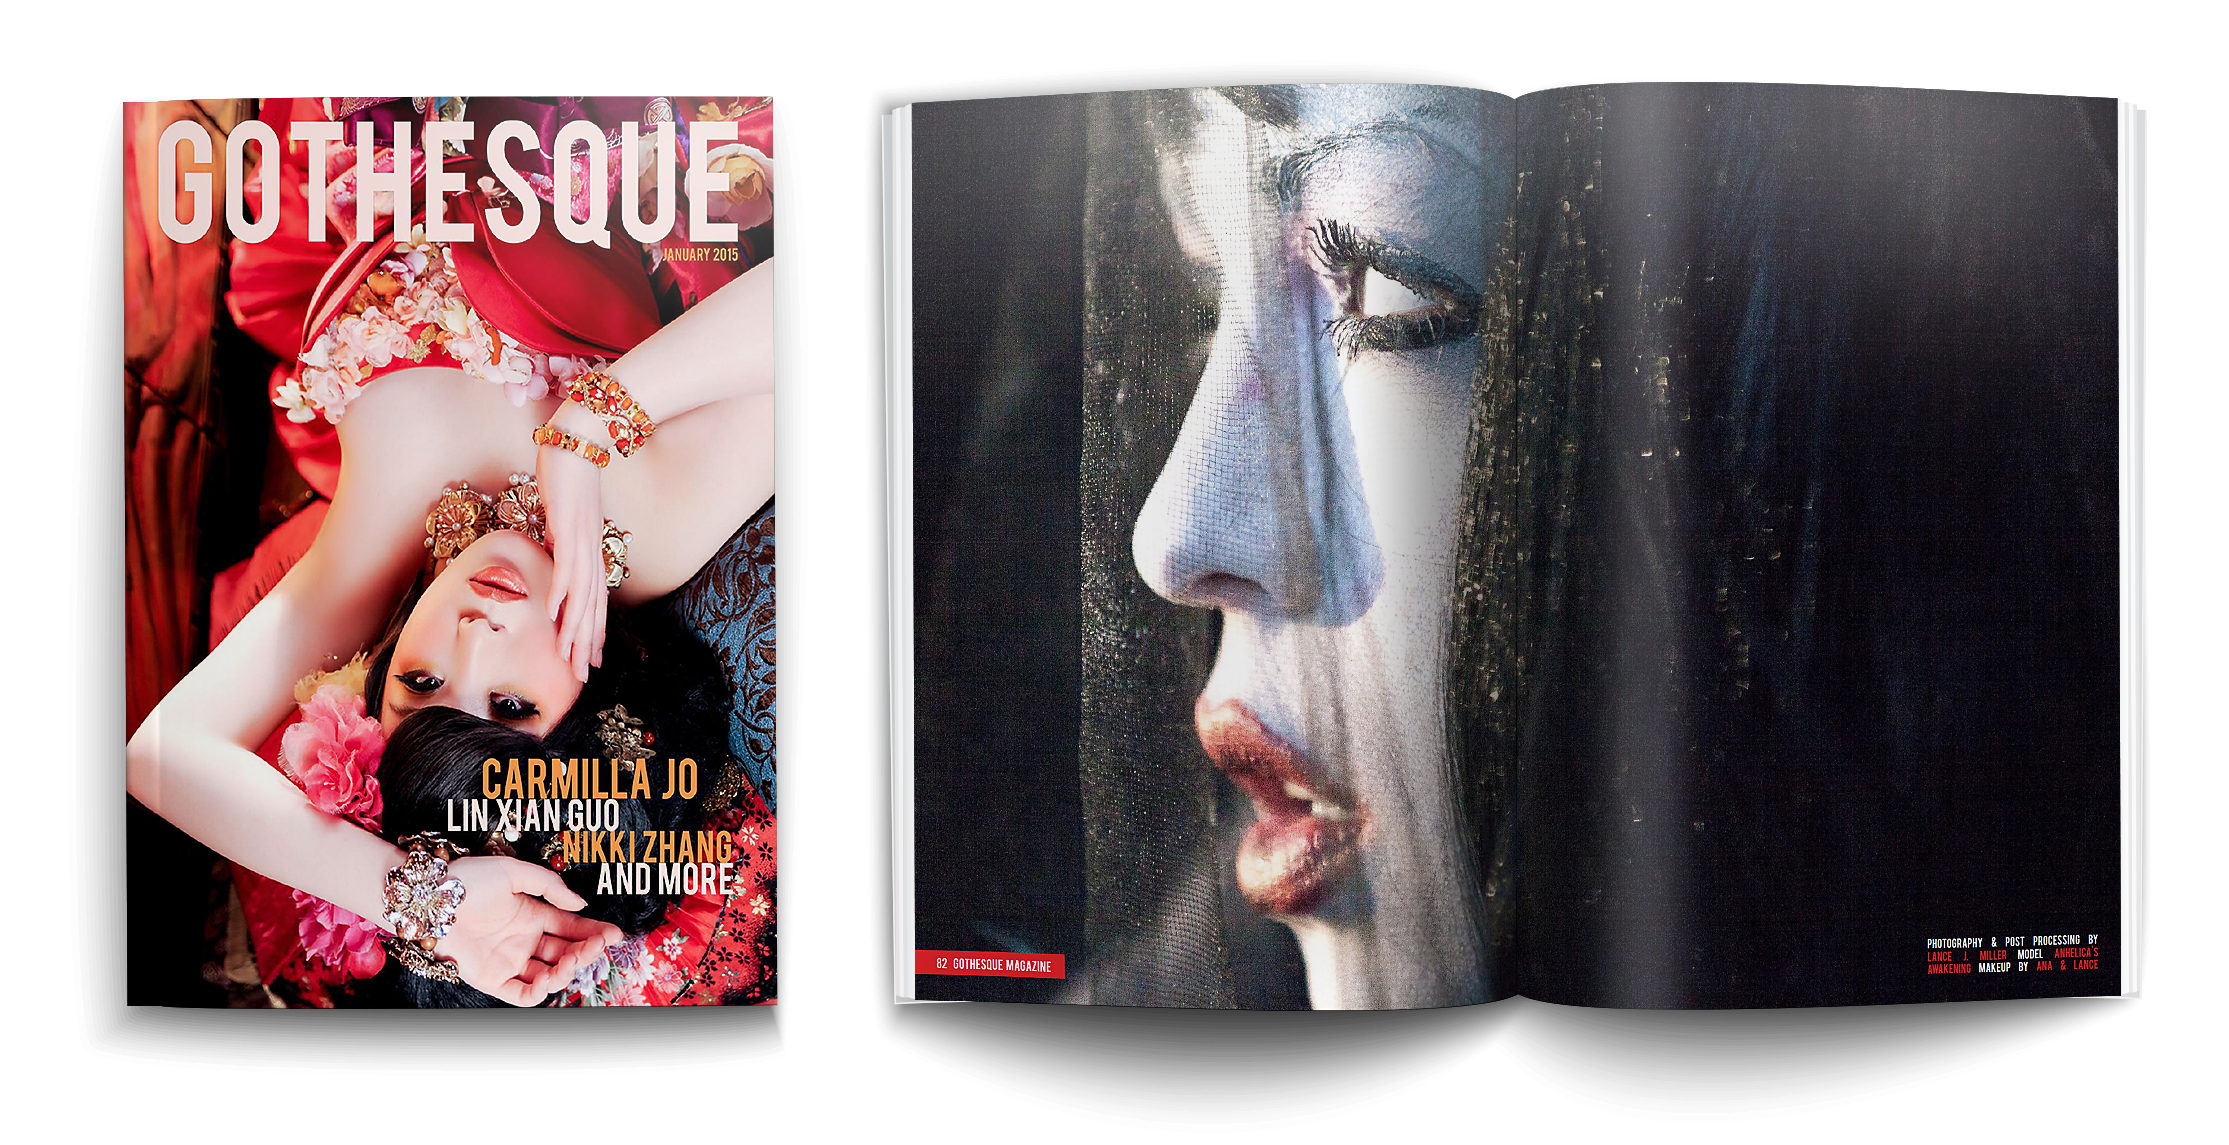 Gothesque_Magazine_Issue_20_January_2015_Render2.png